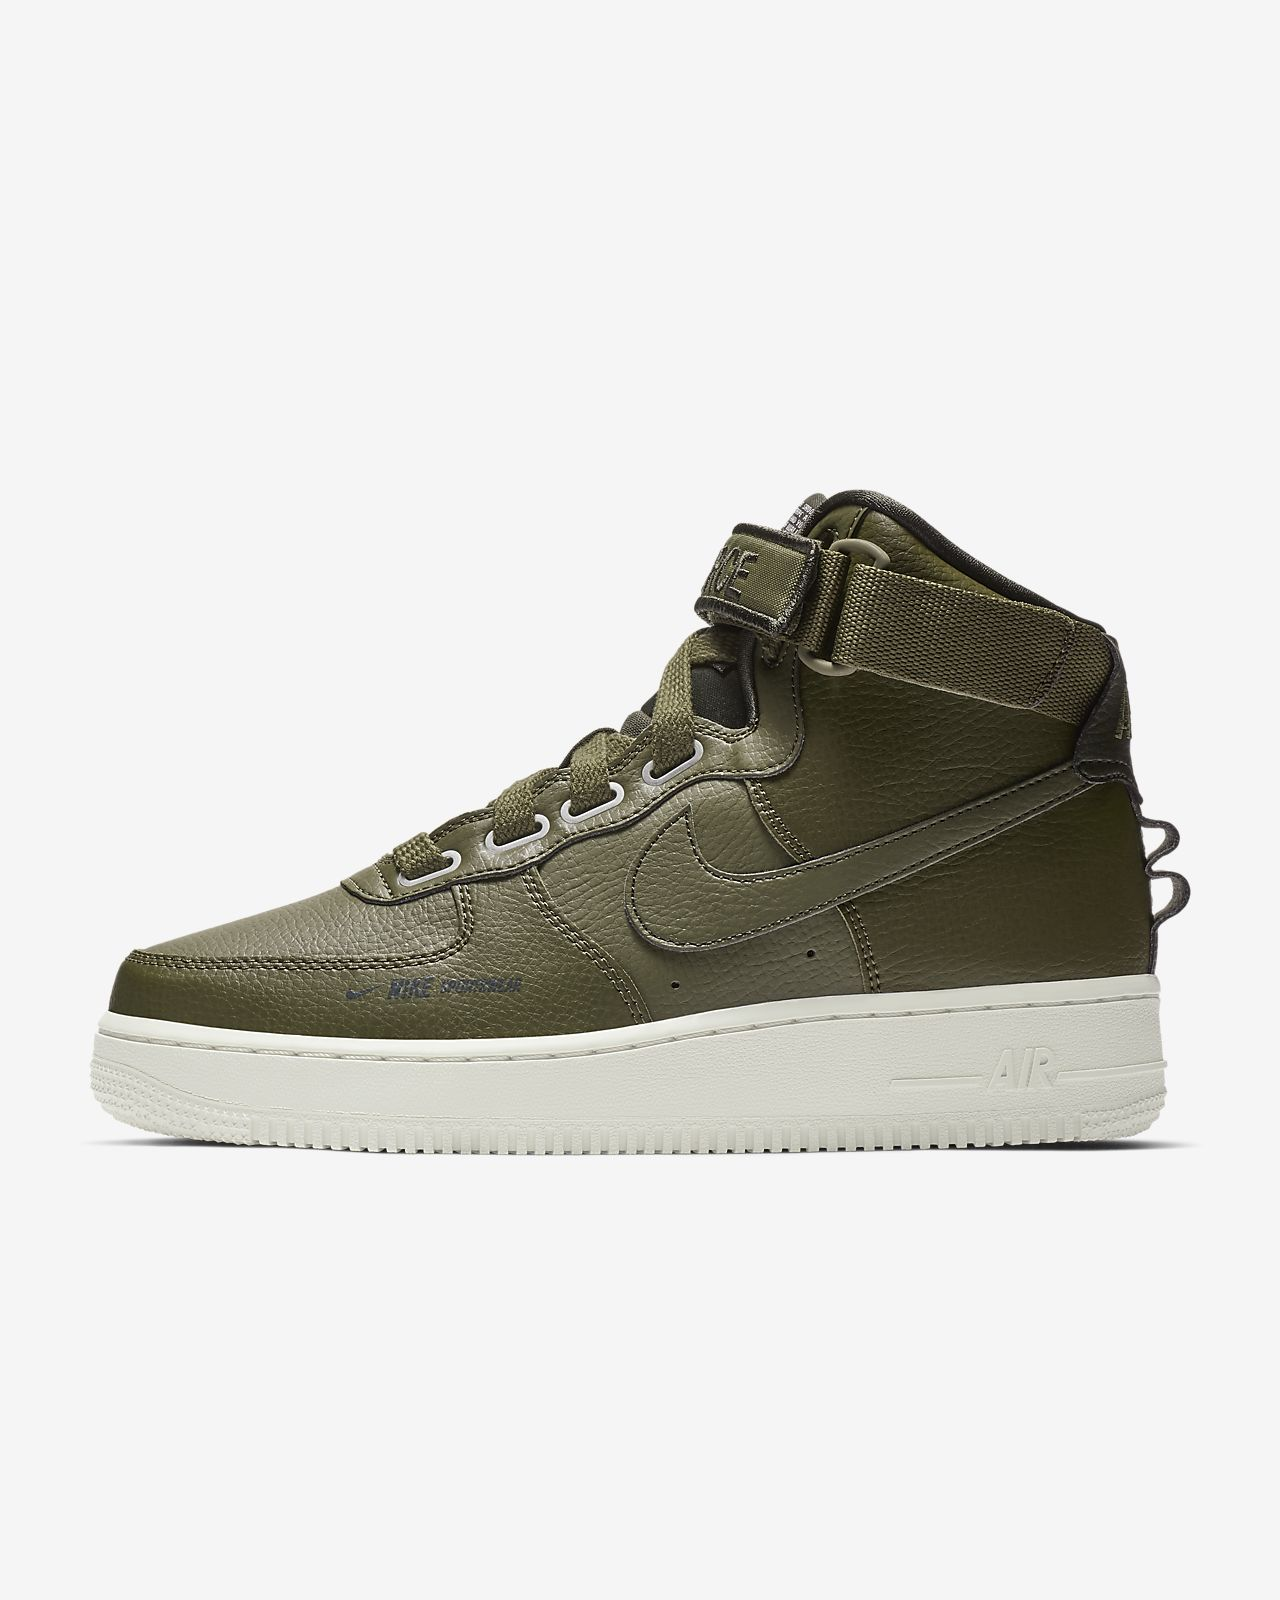 reputable site 22e1e ade4a Nike Air Force 1 High Utility Women's Shoe